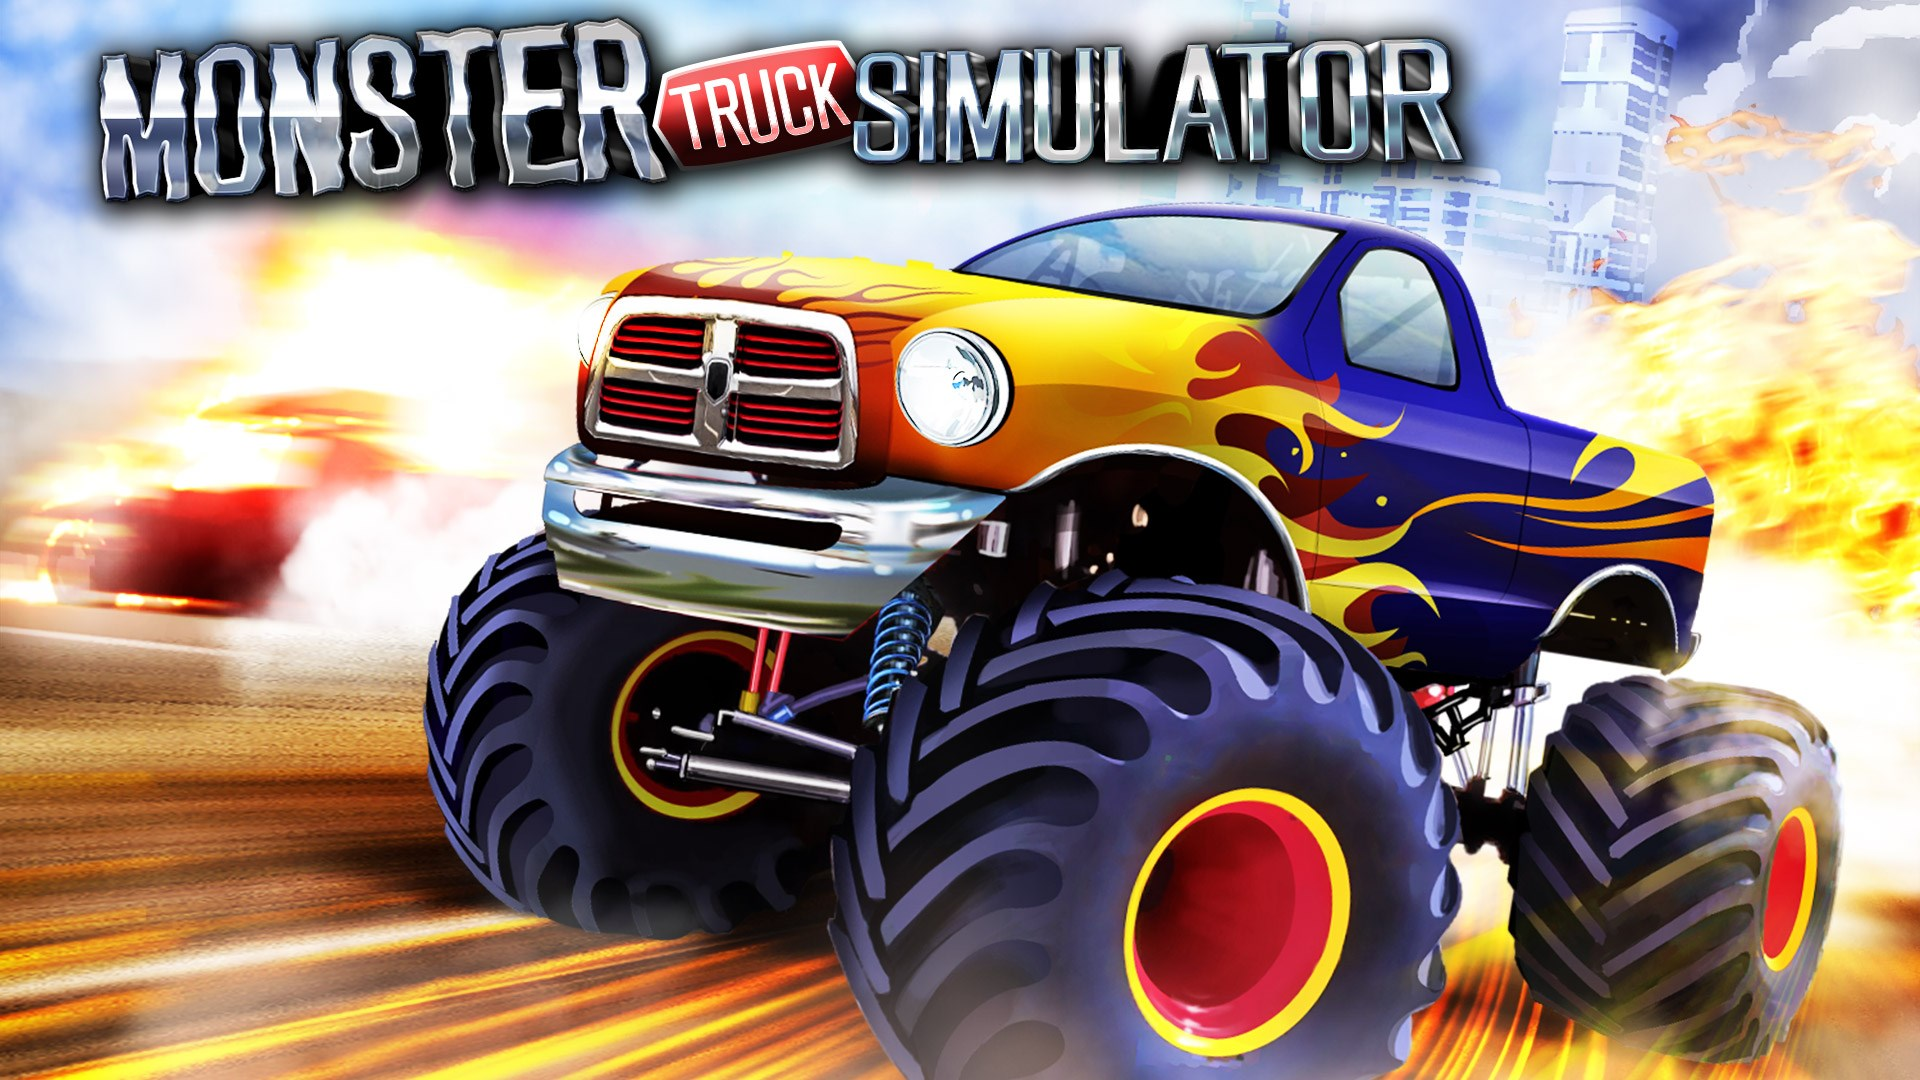 Monster Truck Simulator